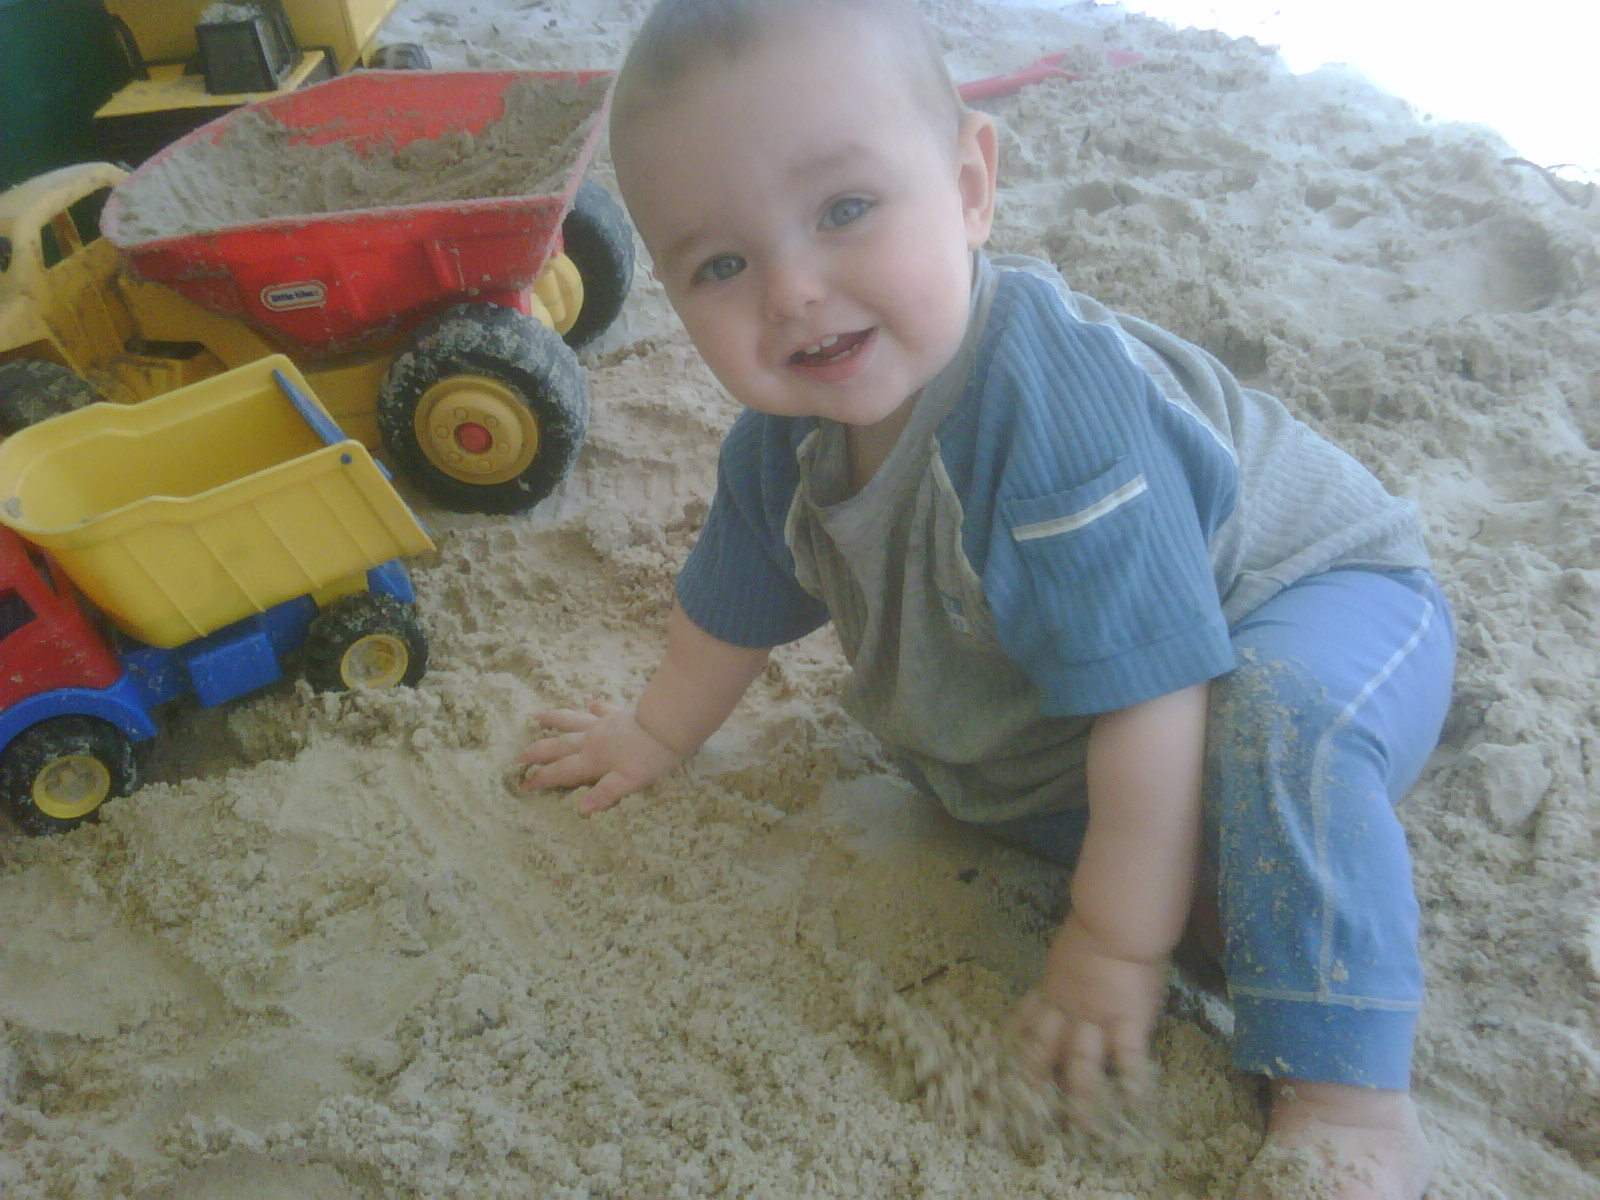 Master 6 ate fists full of sand before he was 1 year old!  Yum!